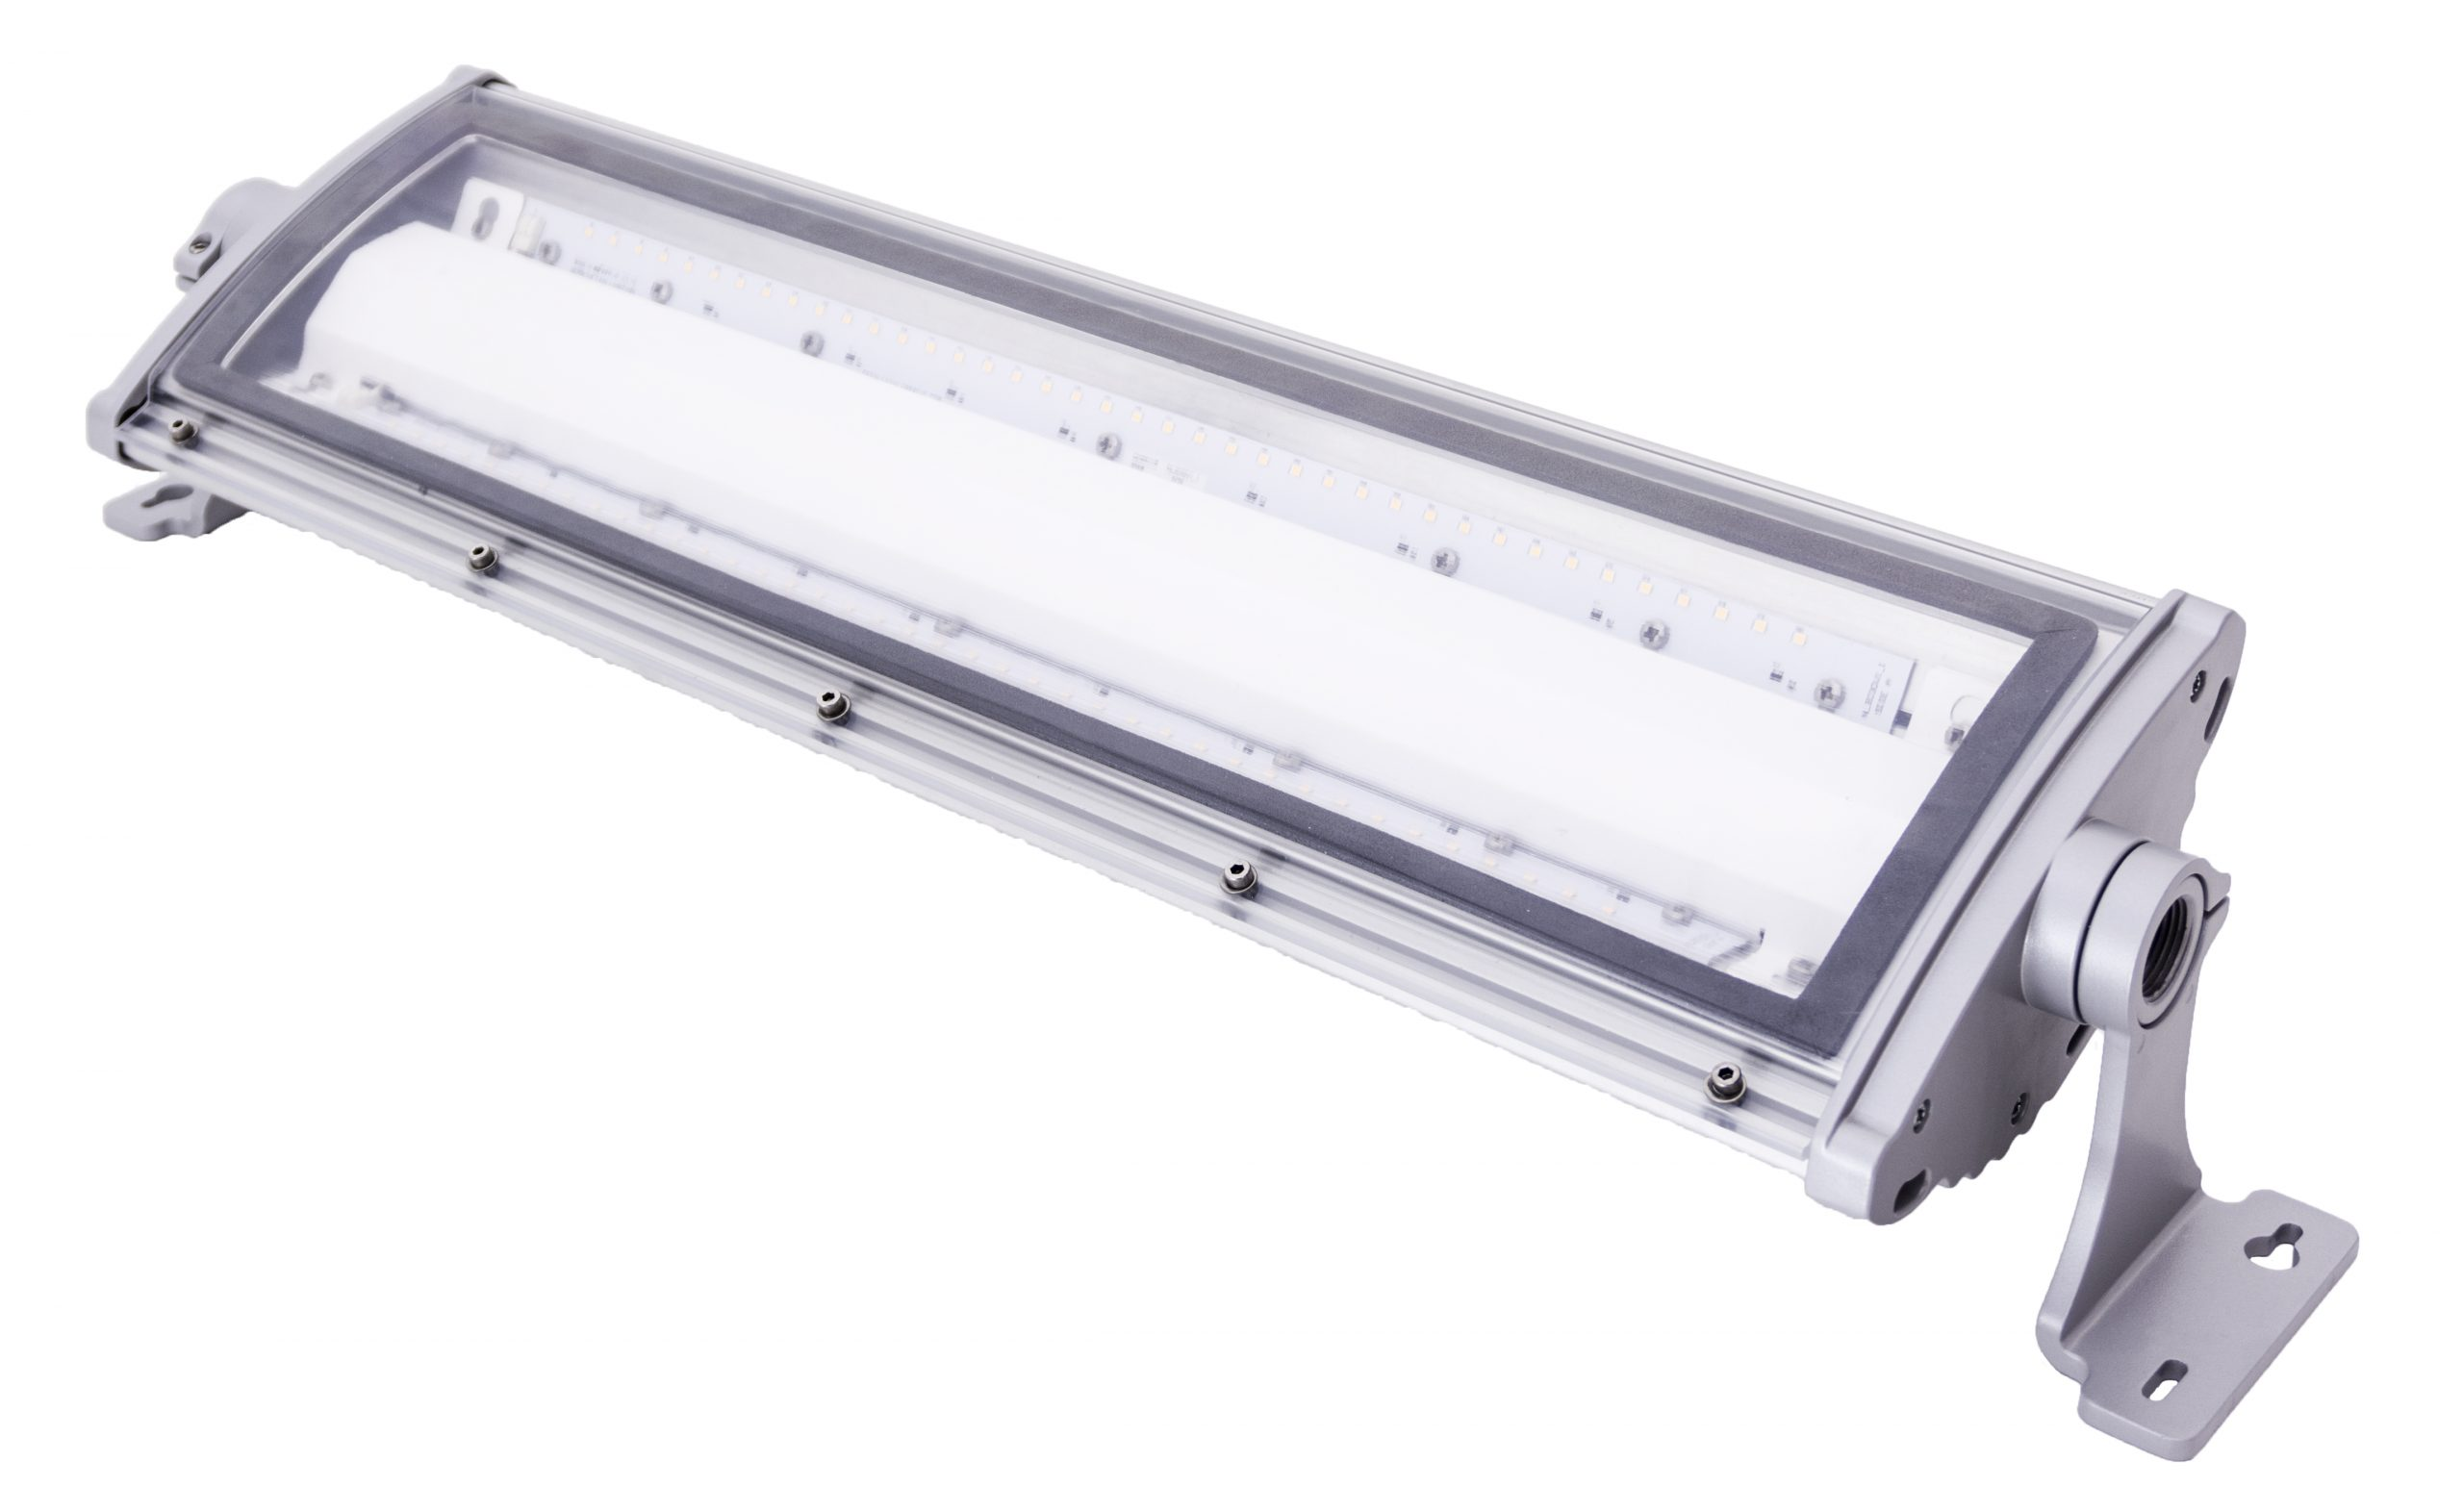 Adjustable angle mount Nemalux NL series linear industrial LED luminaire, IP66, marine and hazardous location class I div 2 (c1d2) approved and replacement for linear fluorescent light fixtures